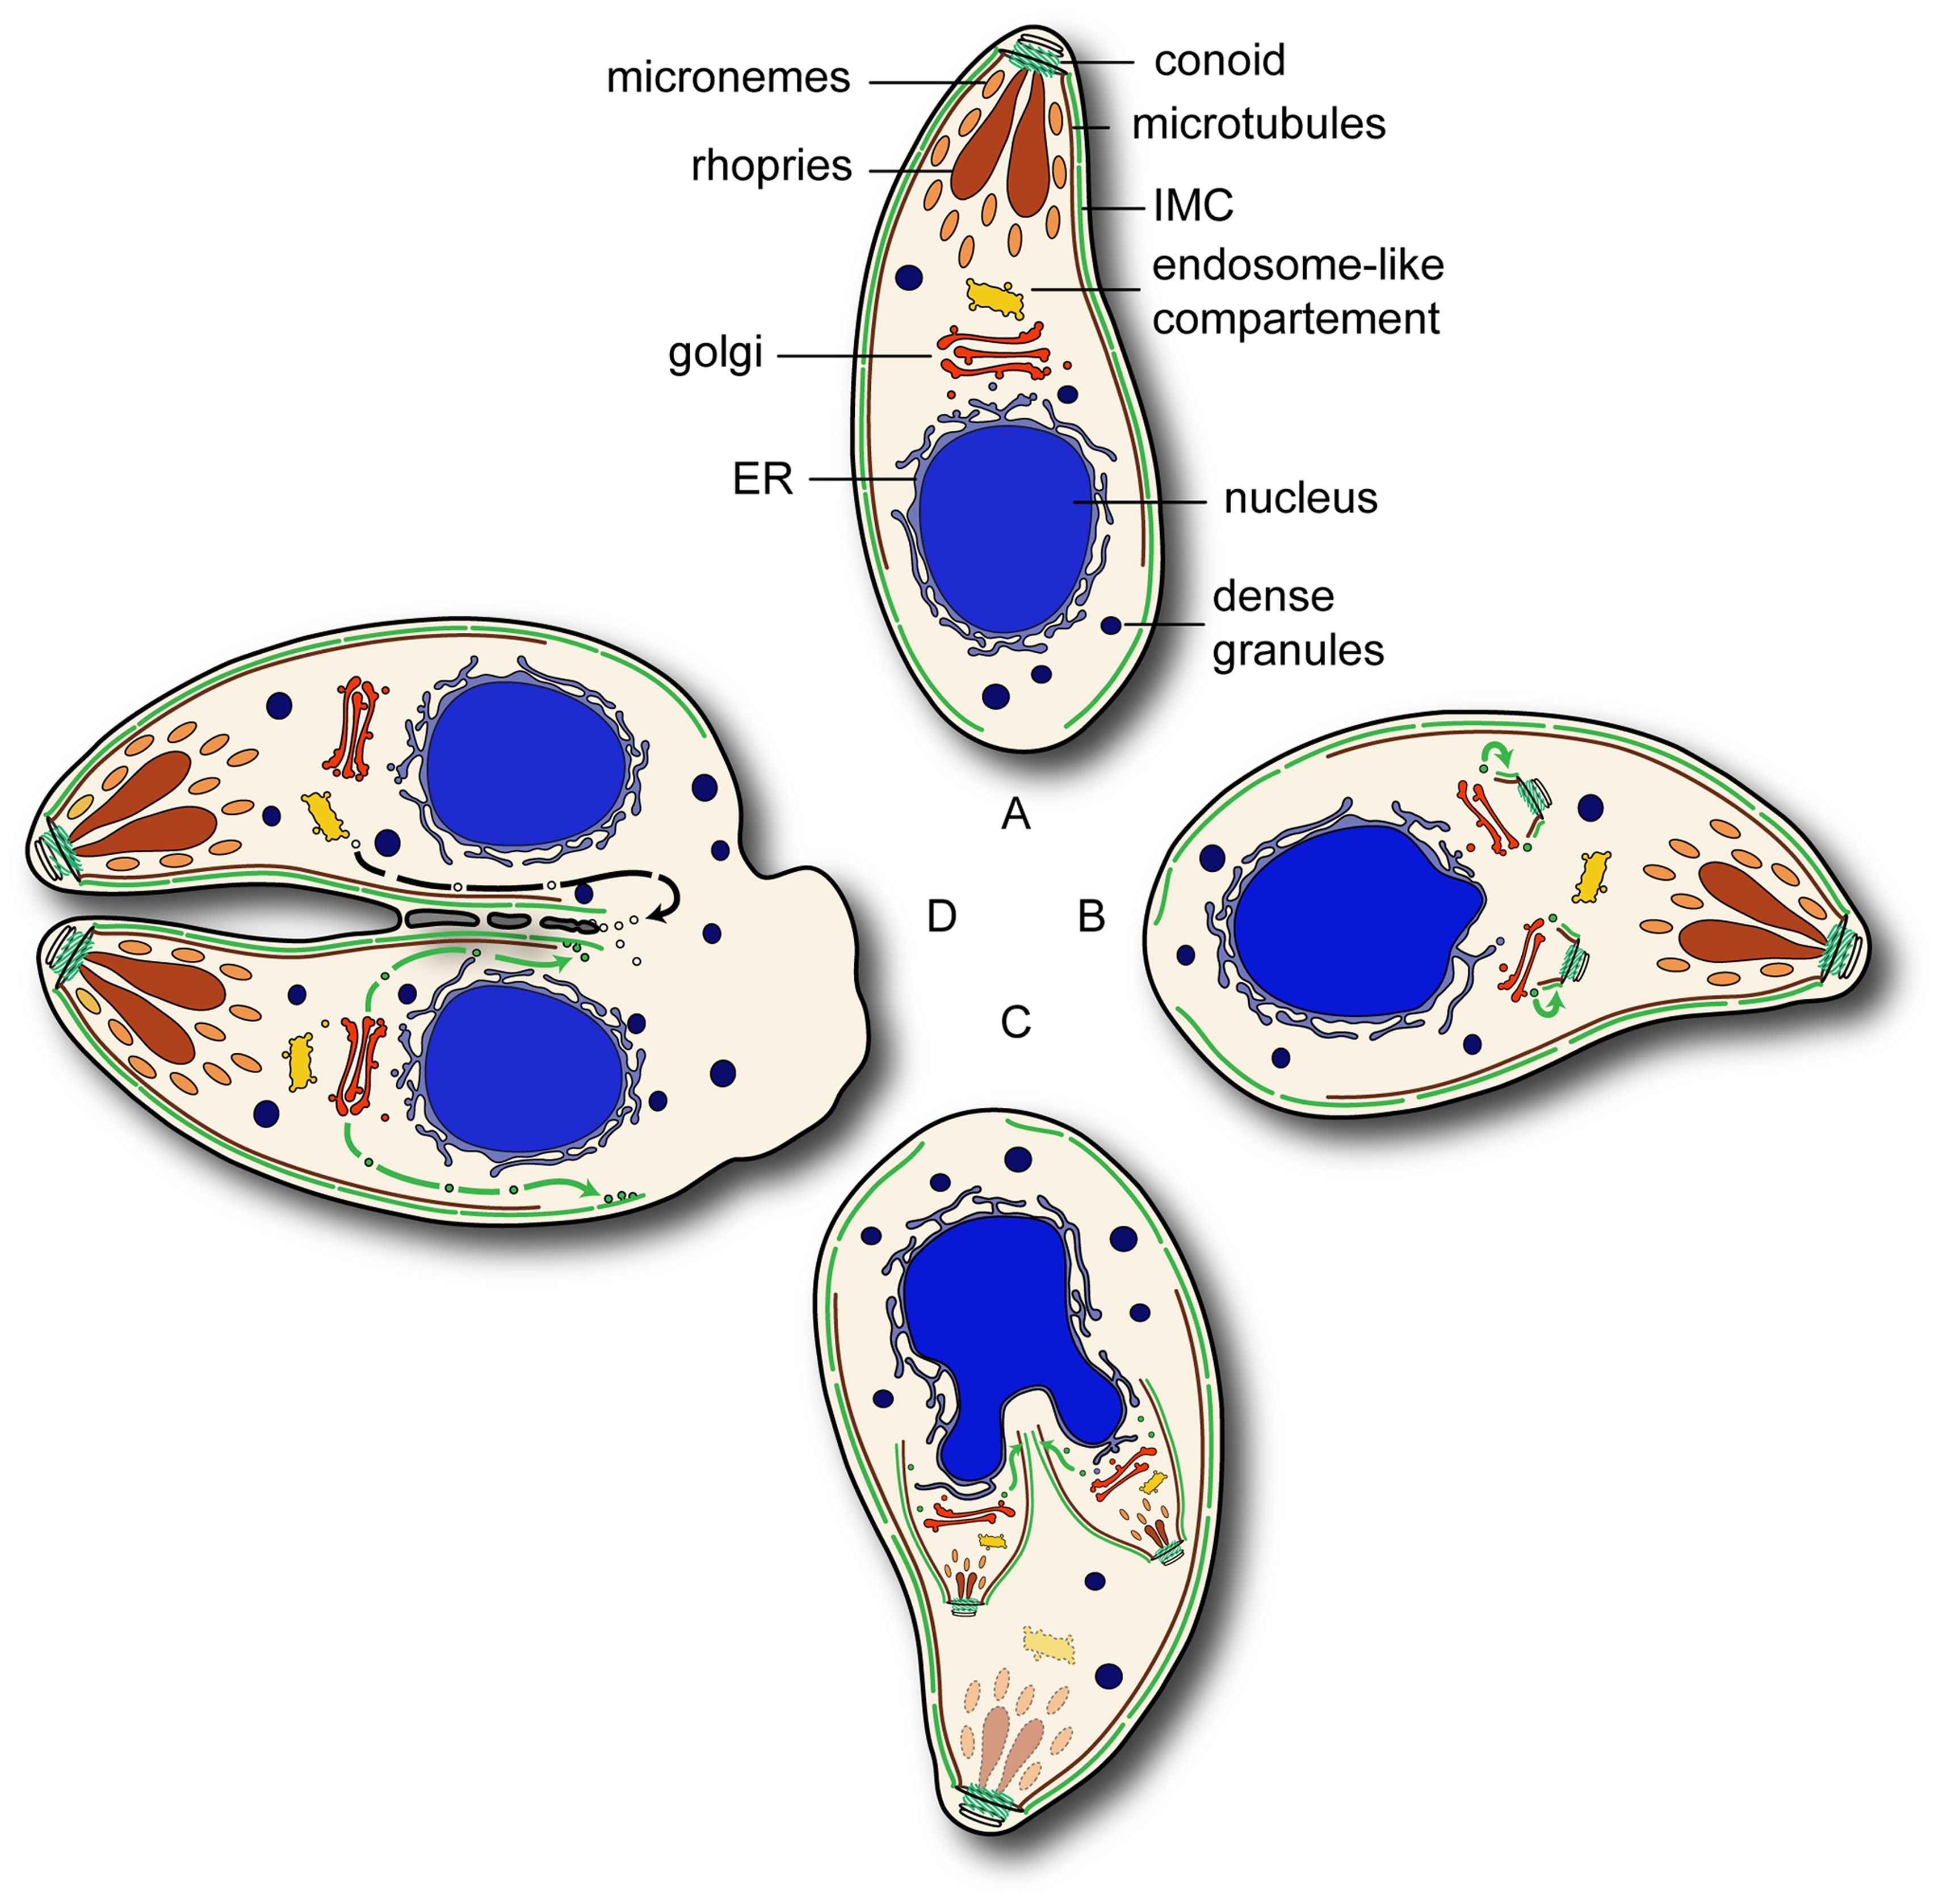 Overview of the Rab11 functions during endodyogeny.